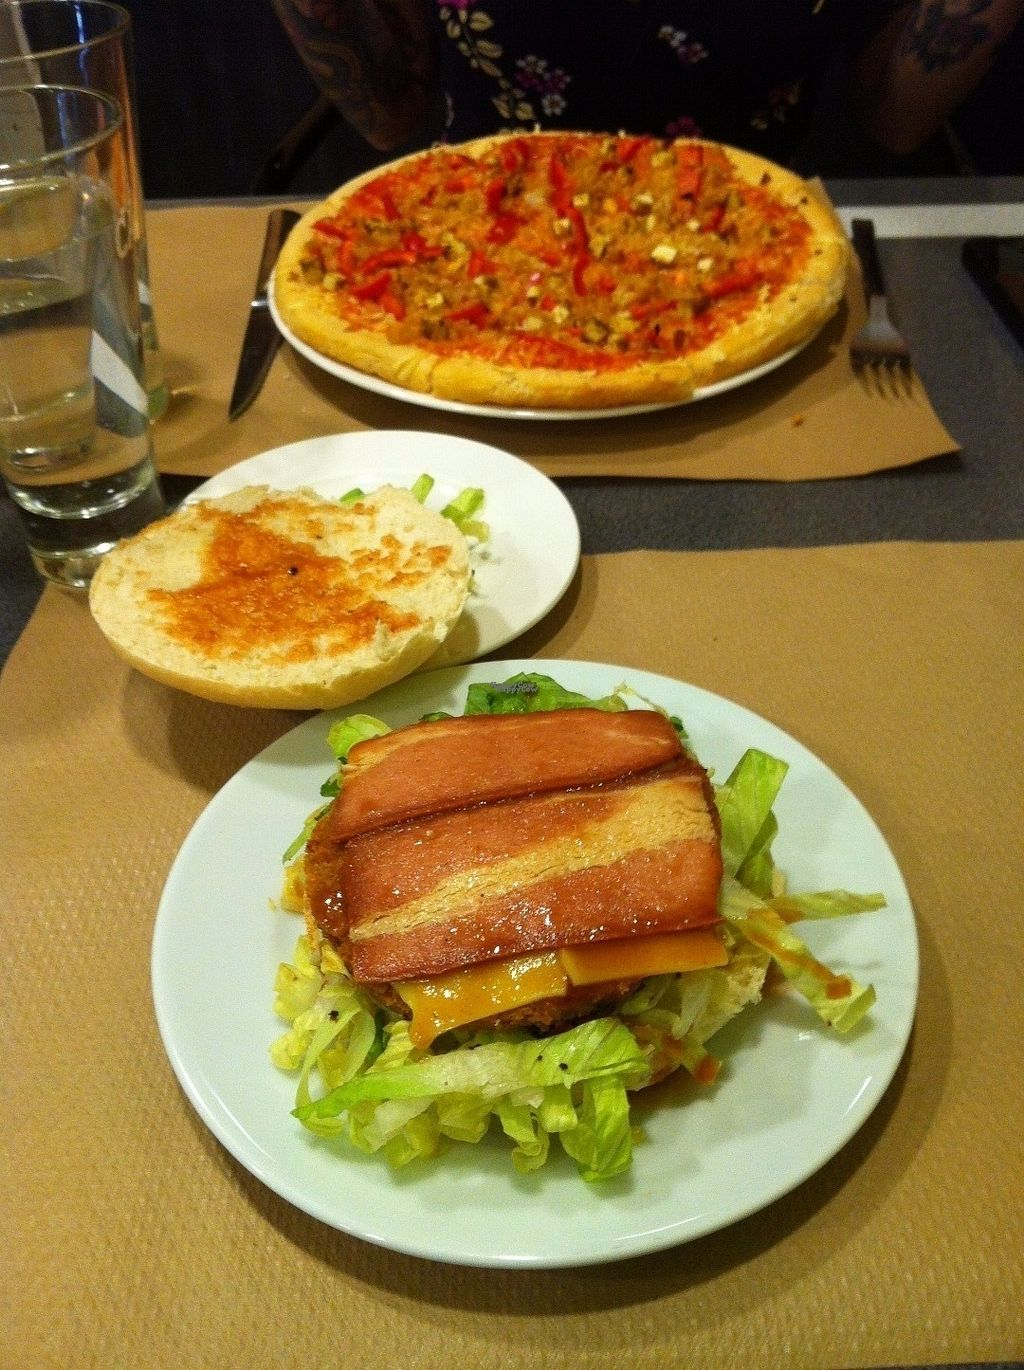 """Photo of El Sol  by <a href=""""/members/profile/Vitxo"""">Vitxo</a> <br/>Pizza with soja, tofu and pepper, and """"Yankee"""" burger <br/> August 27, 2016  - <a href='/contact/abuse/image/43885/171789'>Report</a>"""